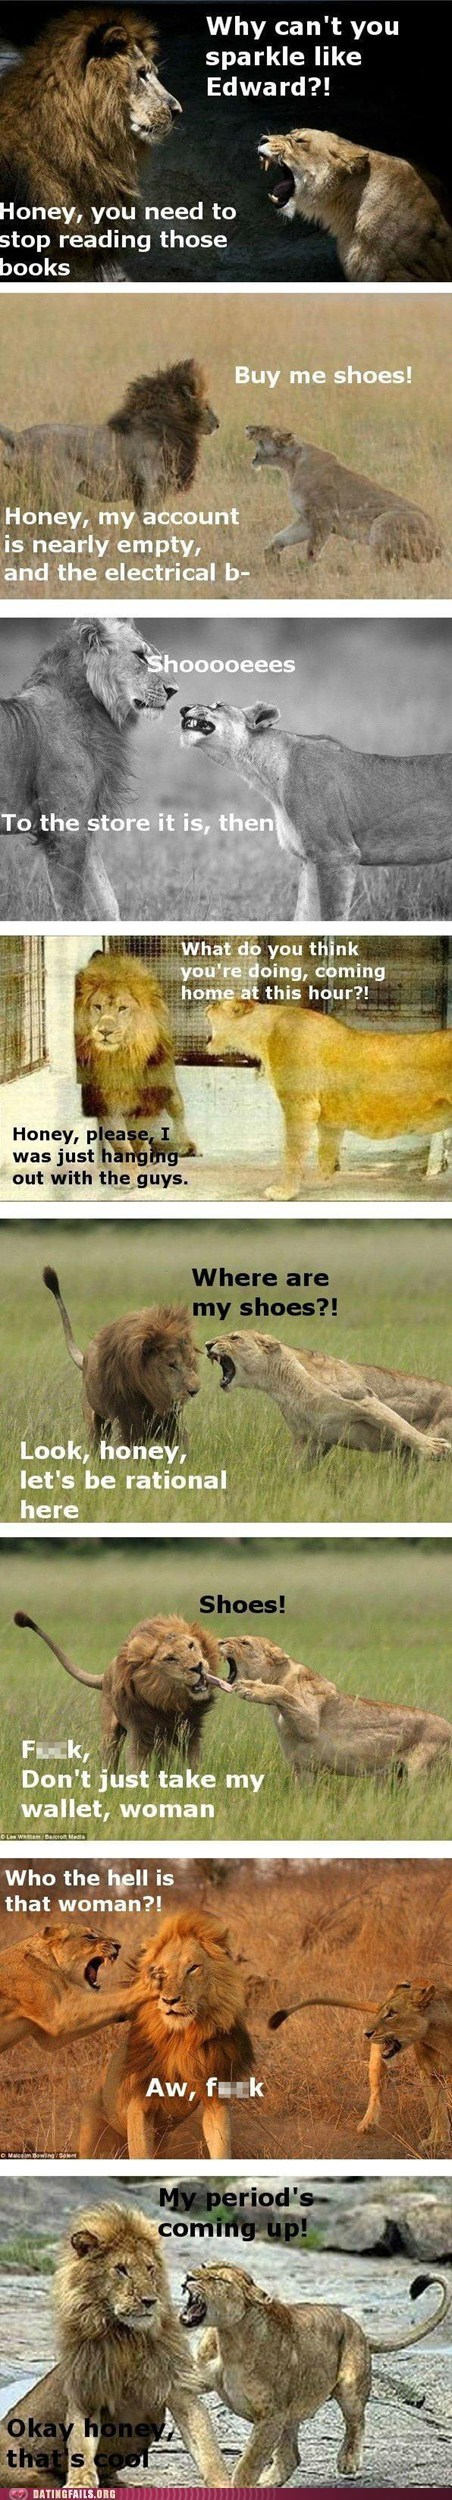 animals Cats controlling dating lions relationships shoes - 5706806784